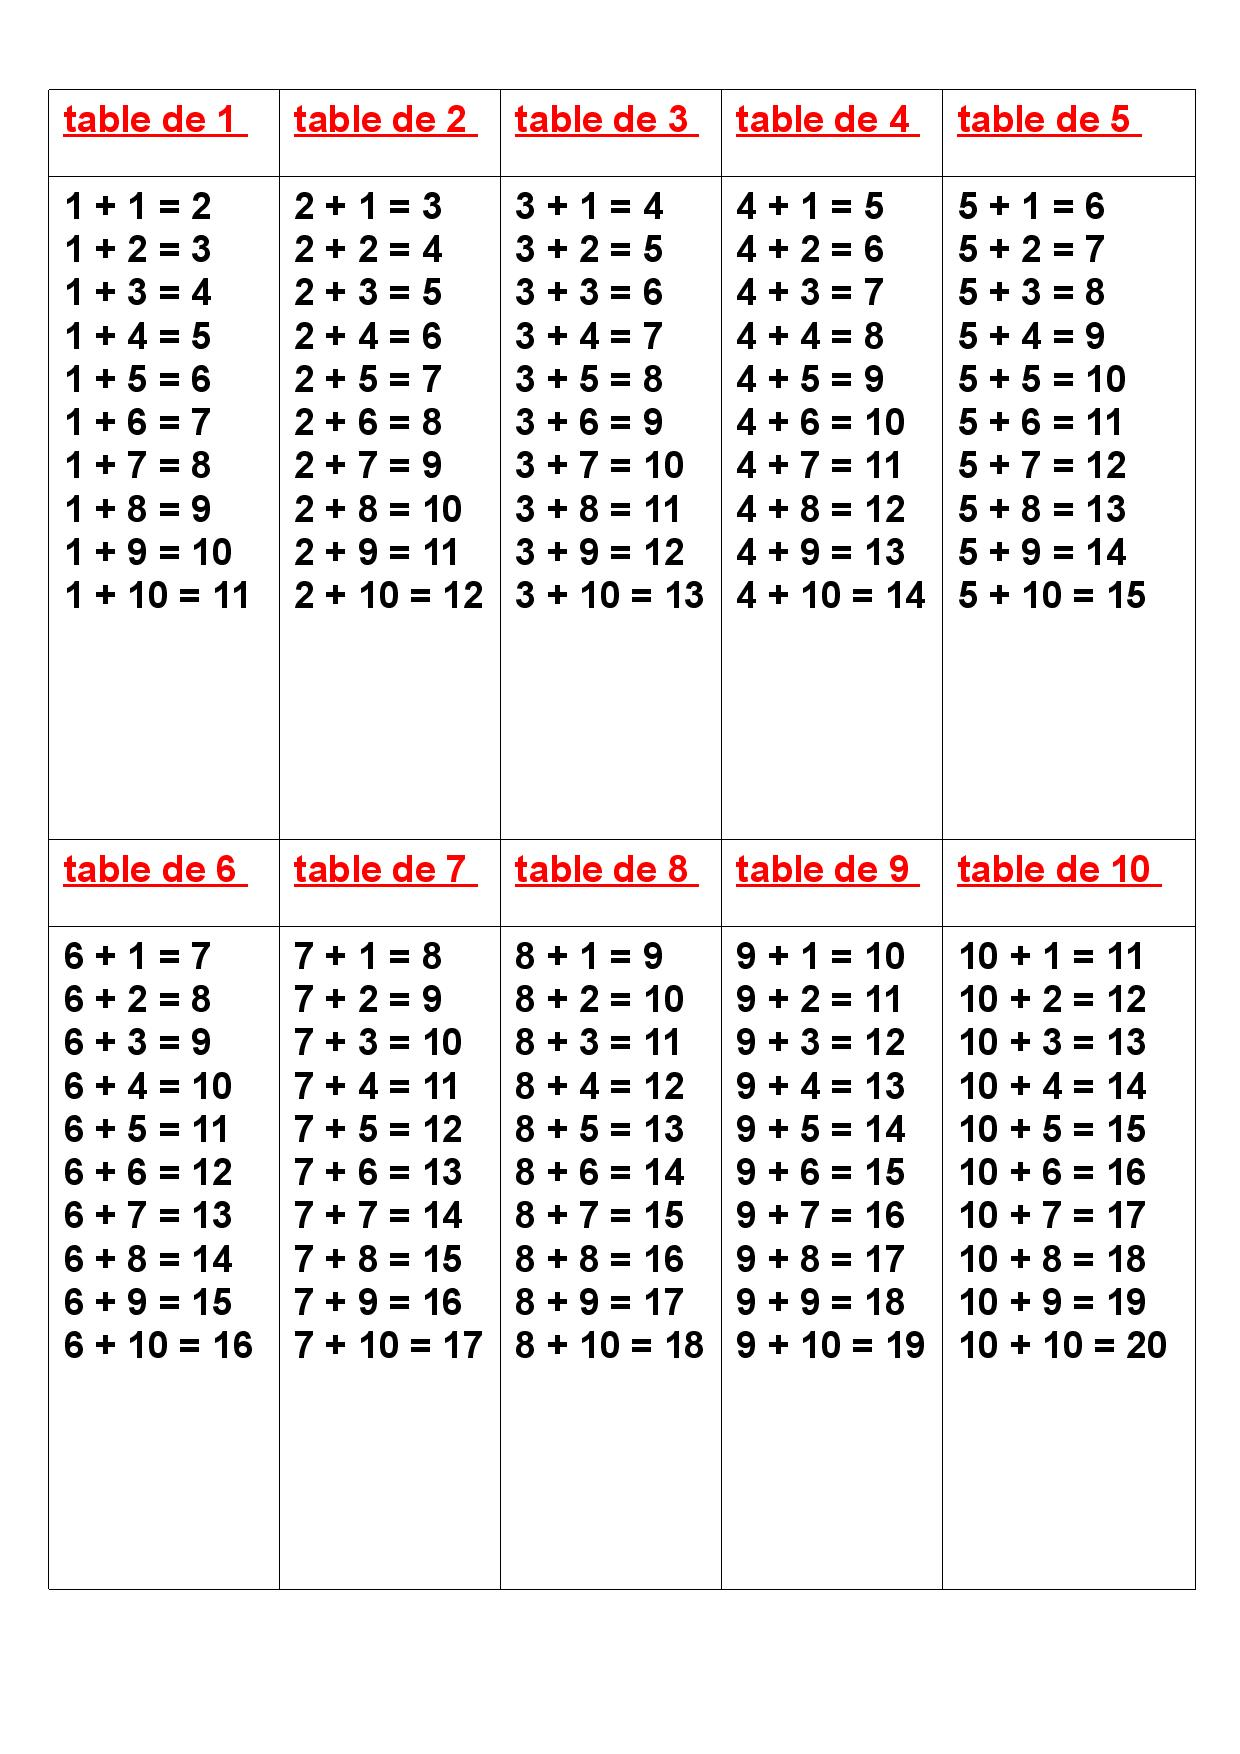 Les tables d 39 addition de 0 10 apprendre tables d 39 addition for Table de multiplication de 6 7 8 9